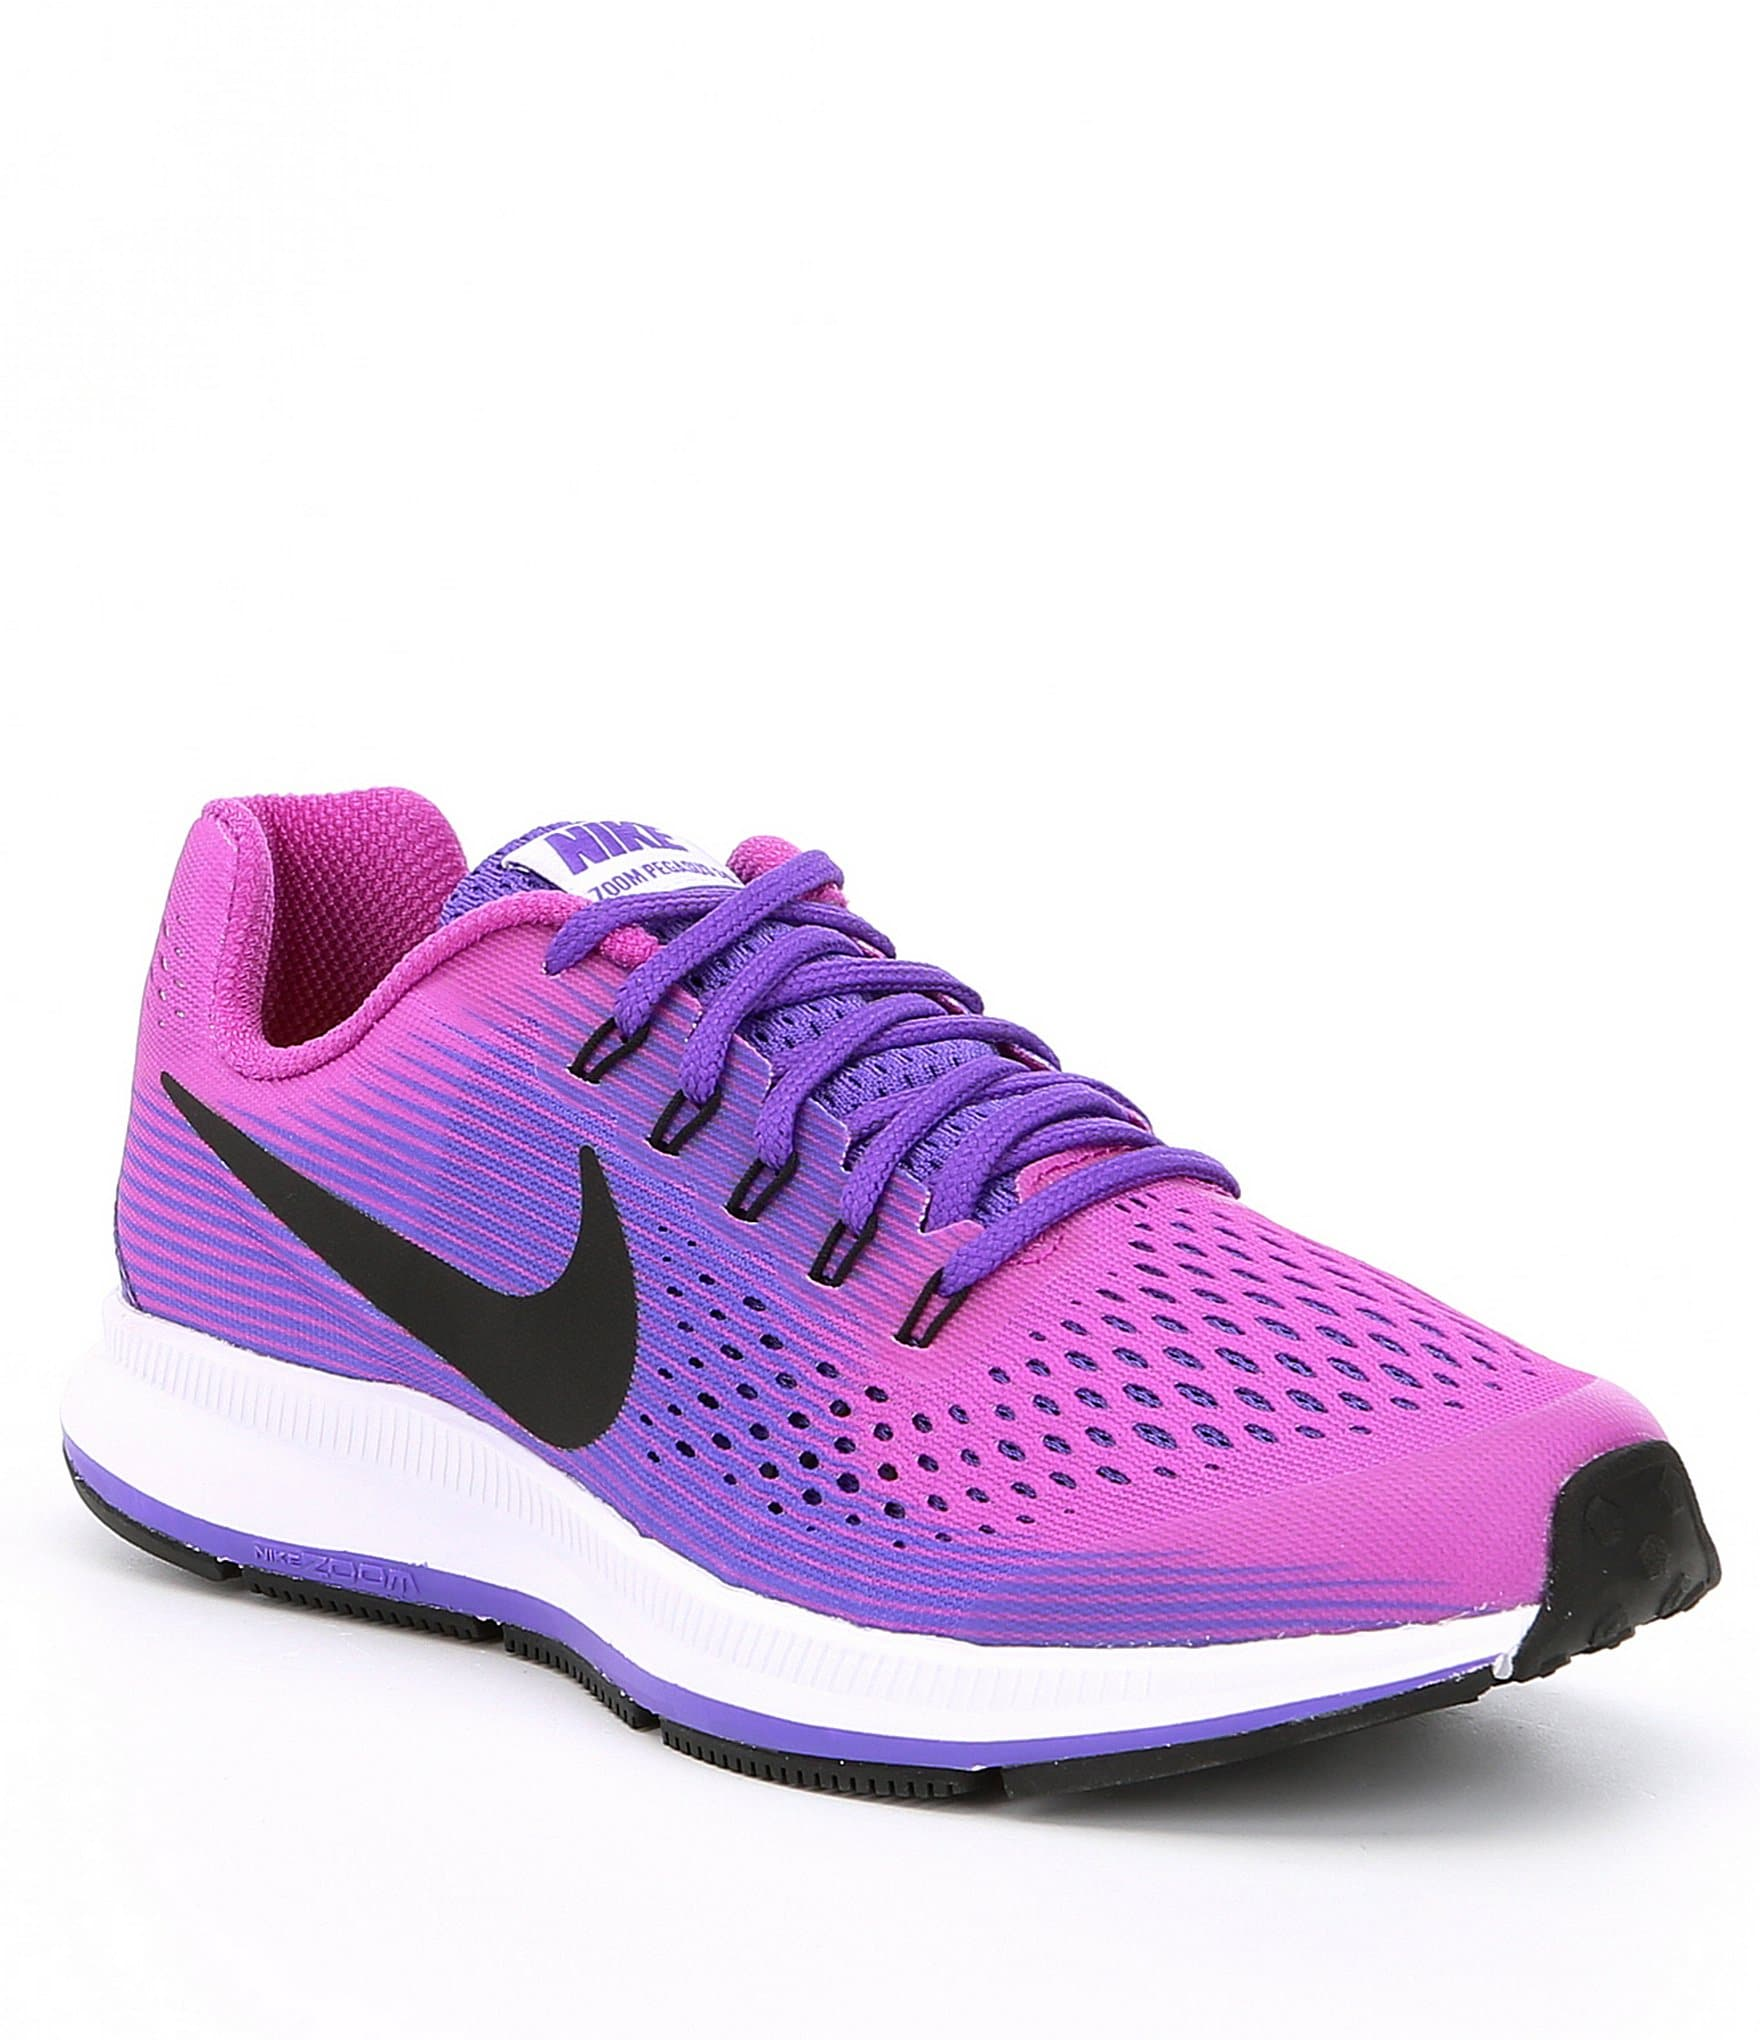 hyper violet nike girls shoes mens health network